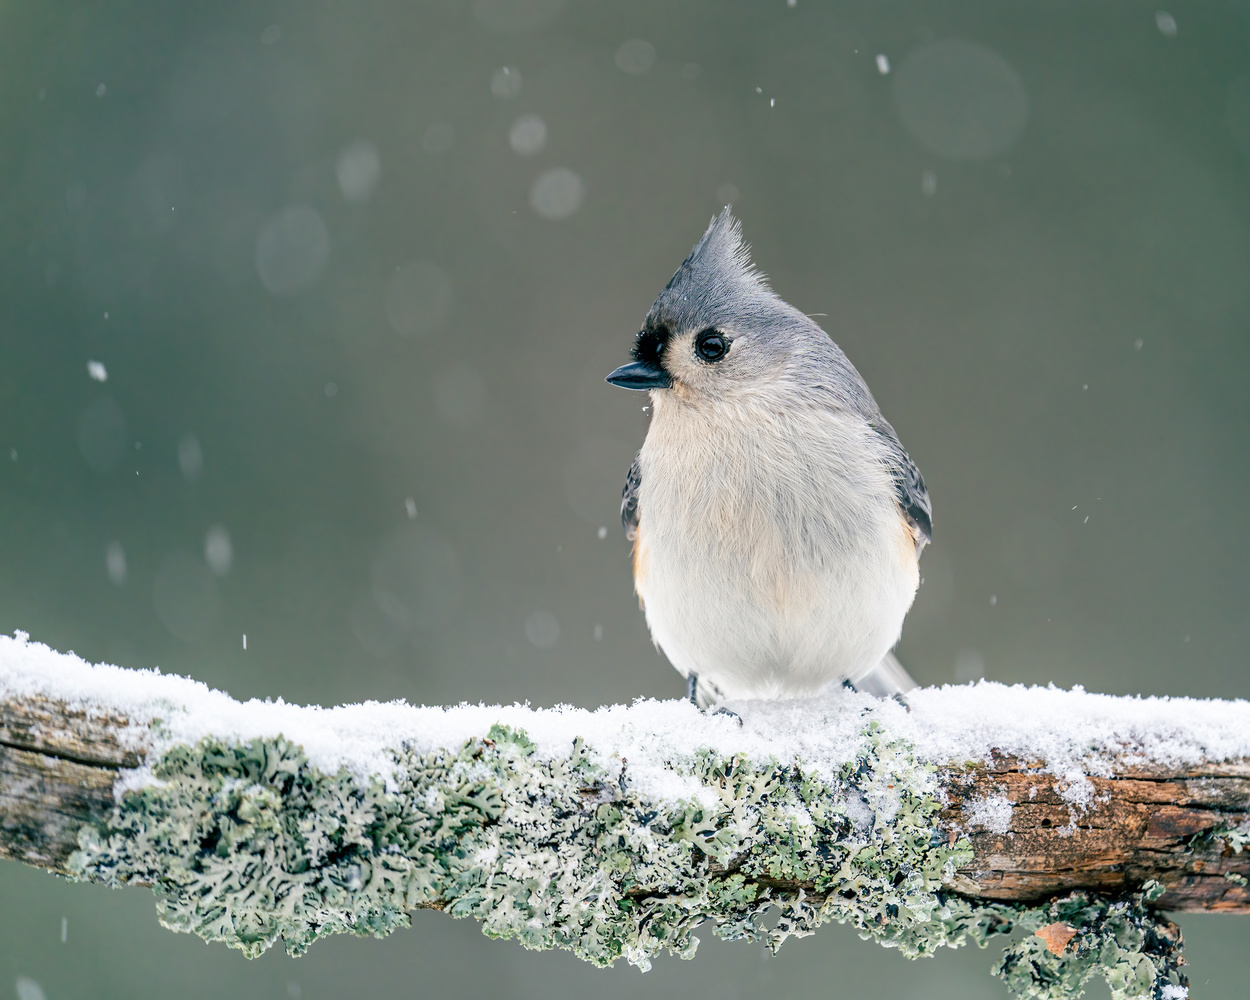 Tufted titmouse by Skyler Ewing